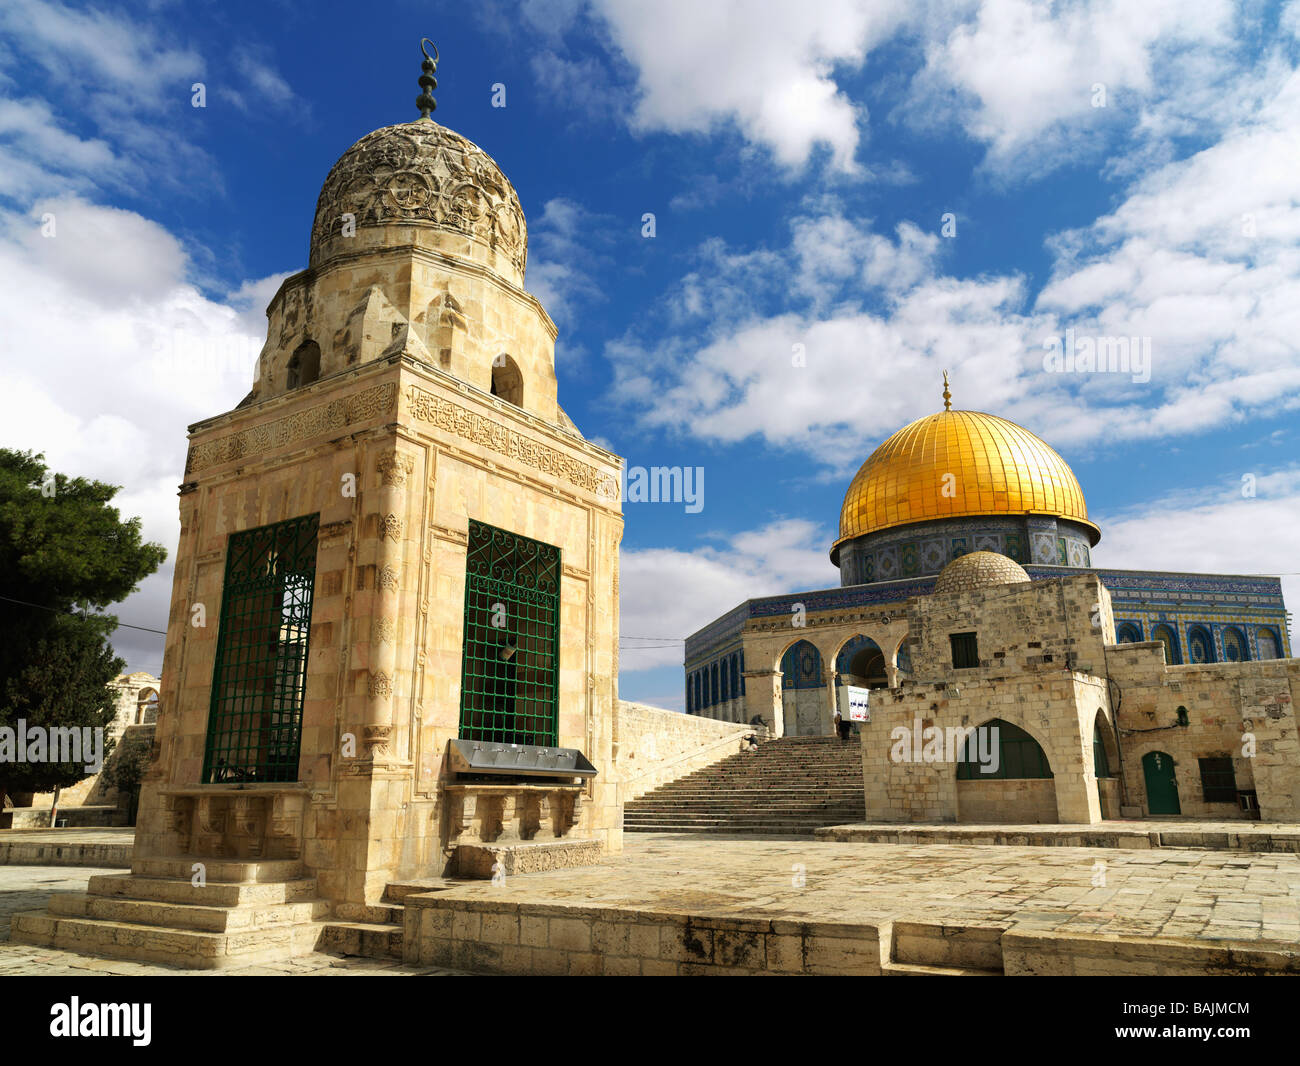 Israel Jerusalem Temple Mount Dome of the Rock mosque Stock Photo